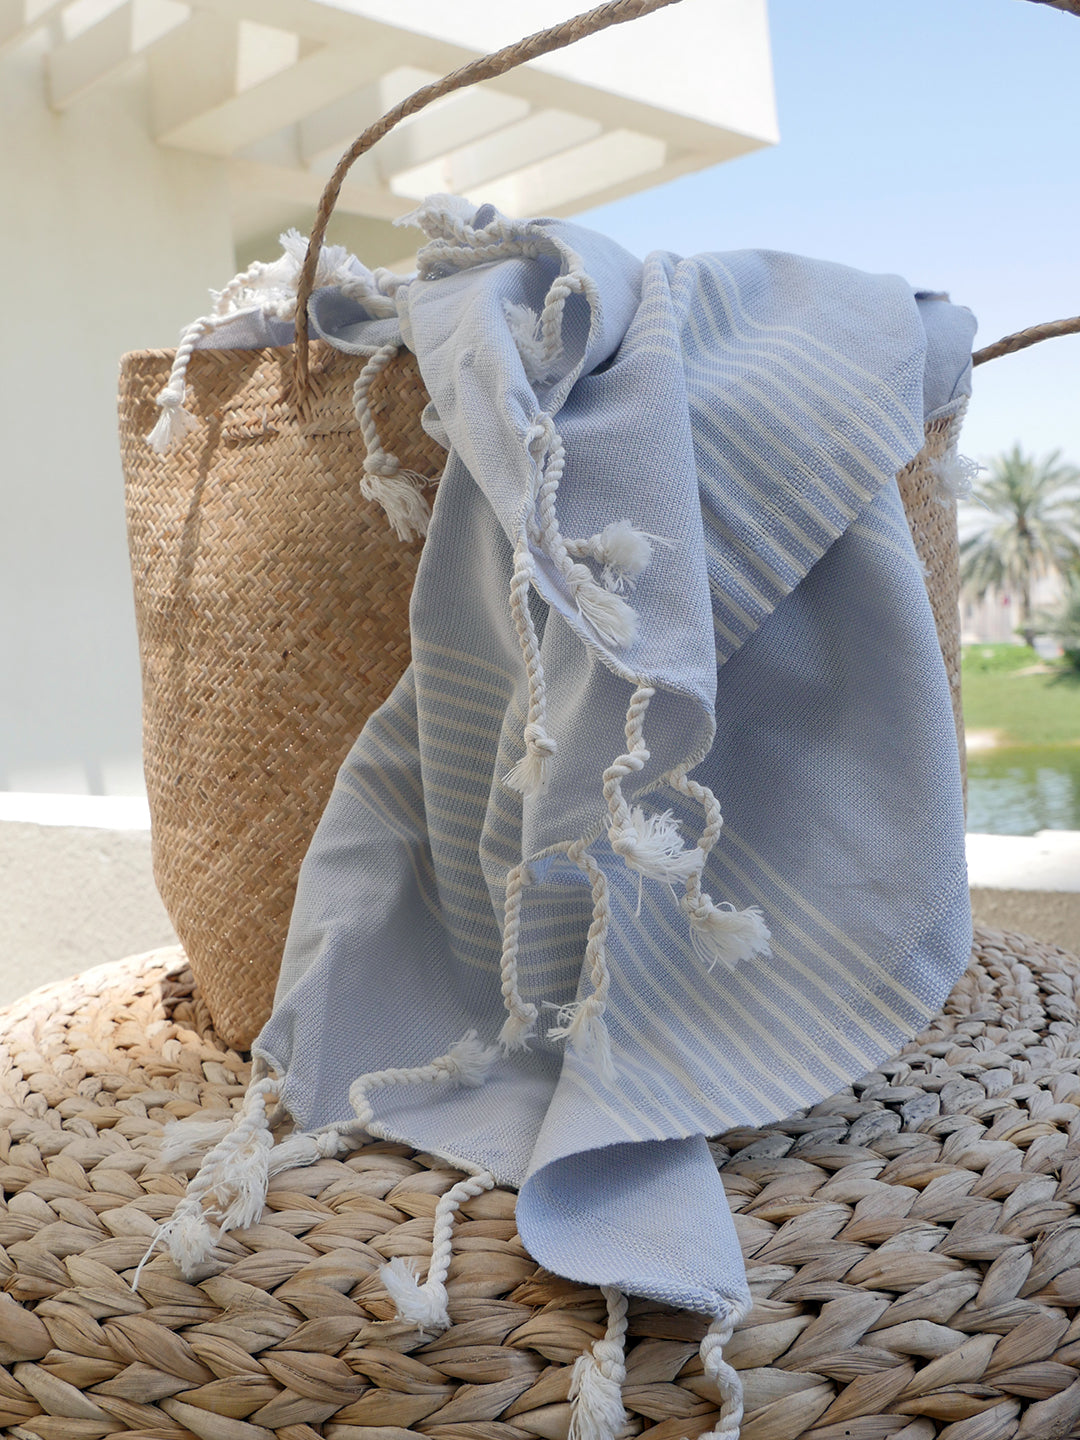 Izla Alanya Hamam Towel Light Grey